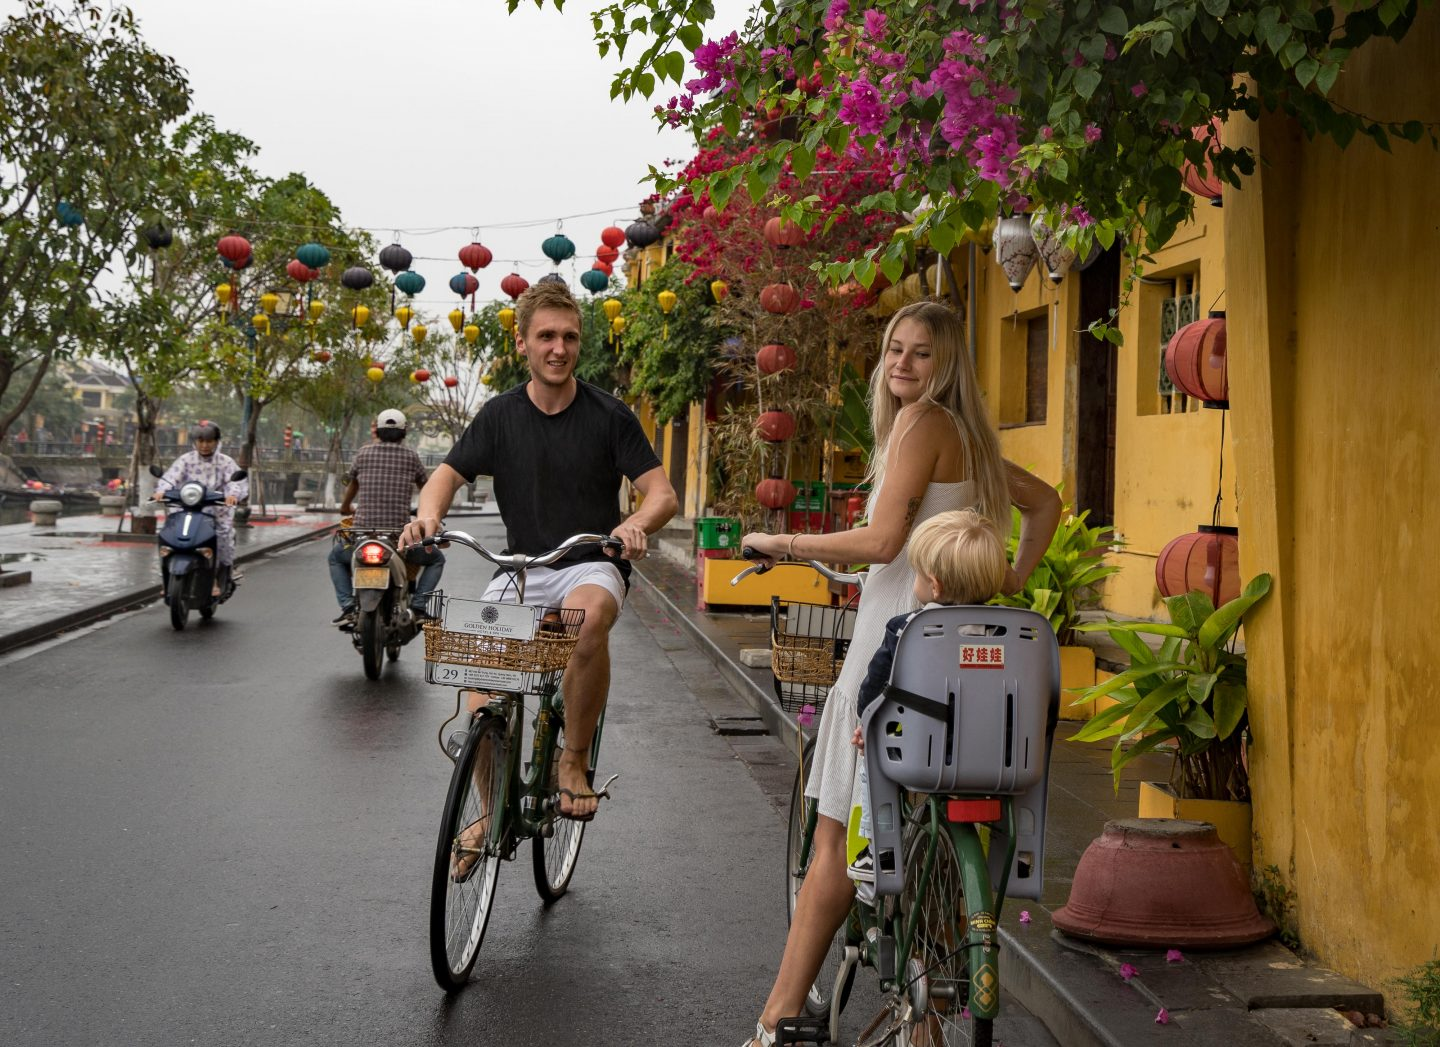 Hoi An Bikes - One Month in Vietnam - Live Life and Roam